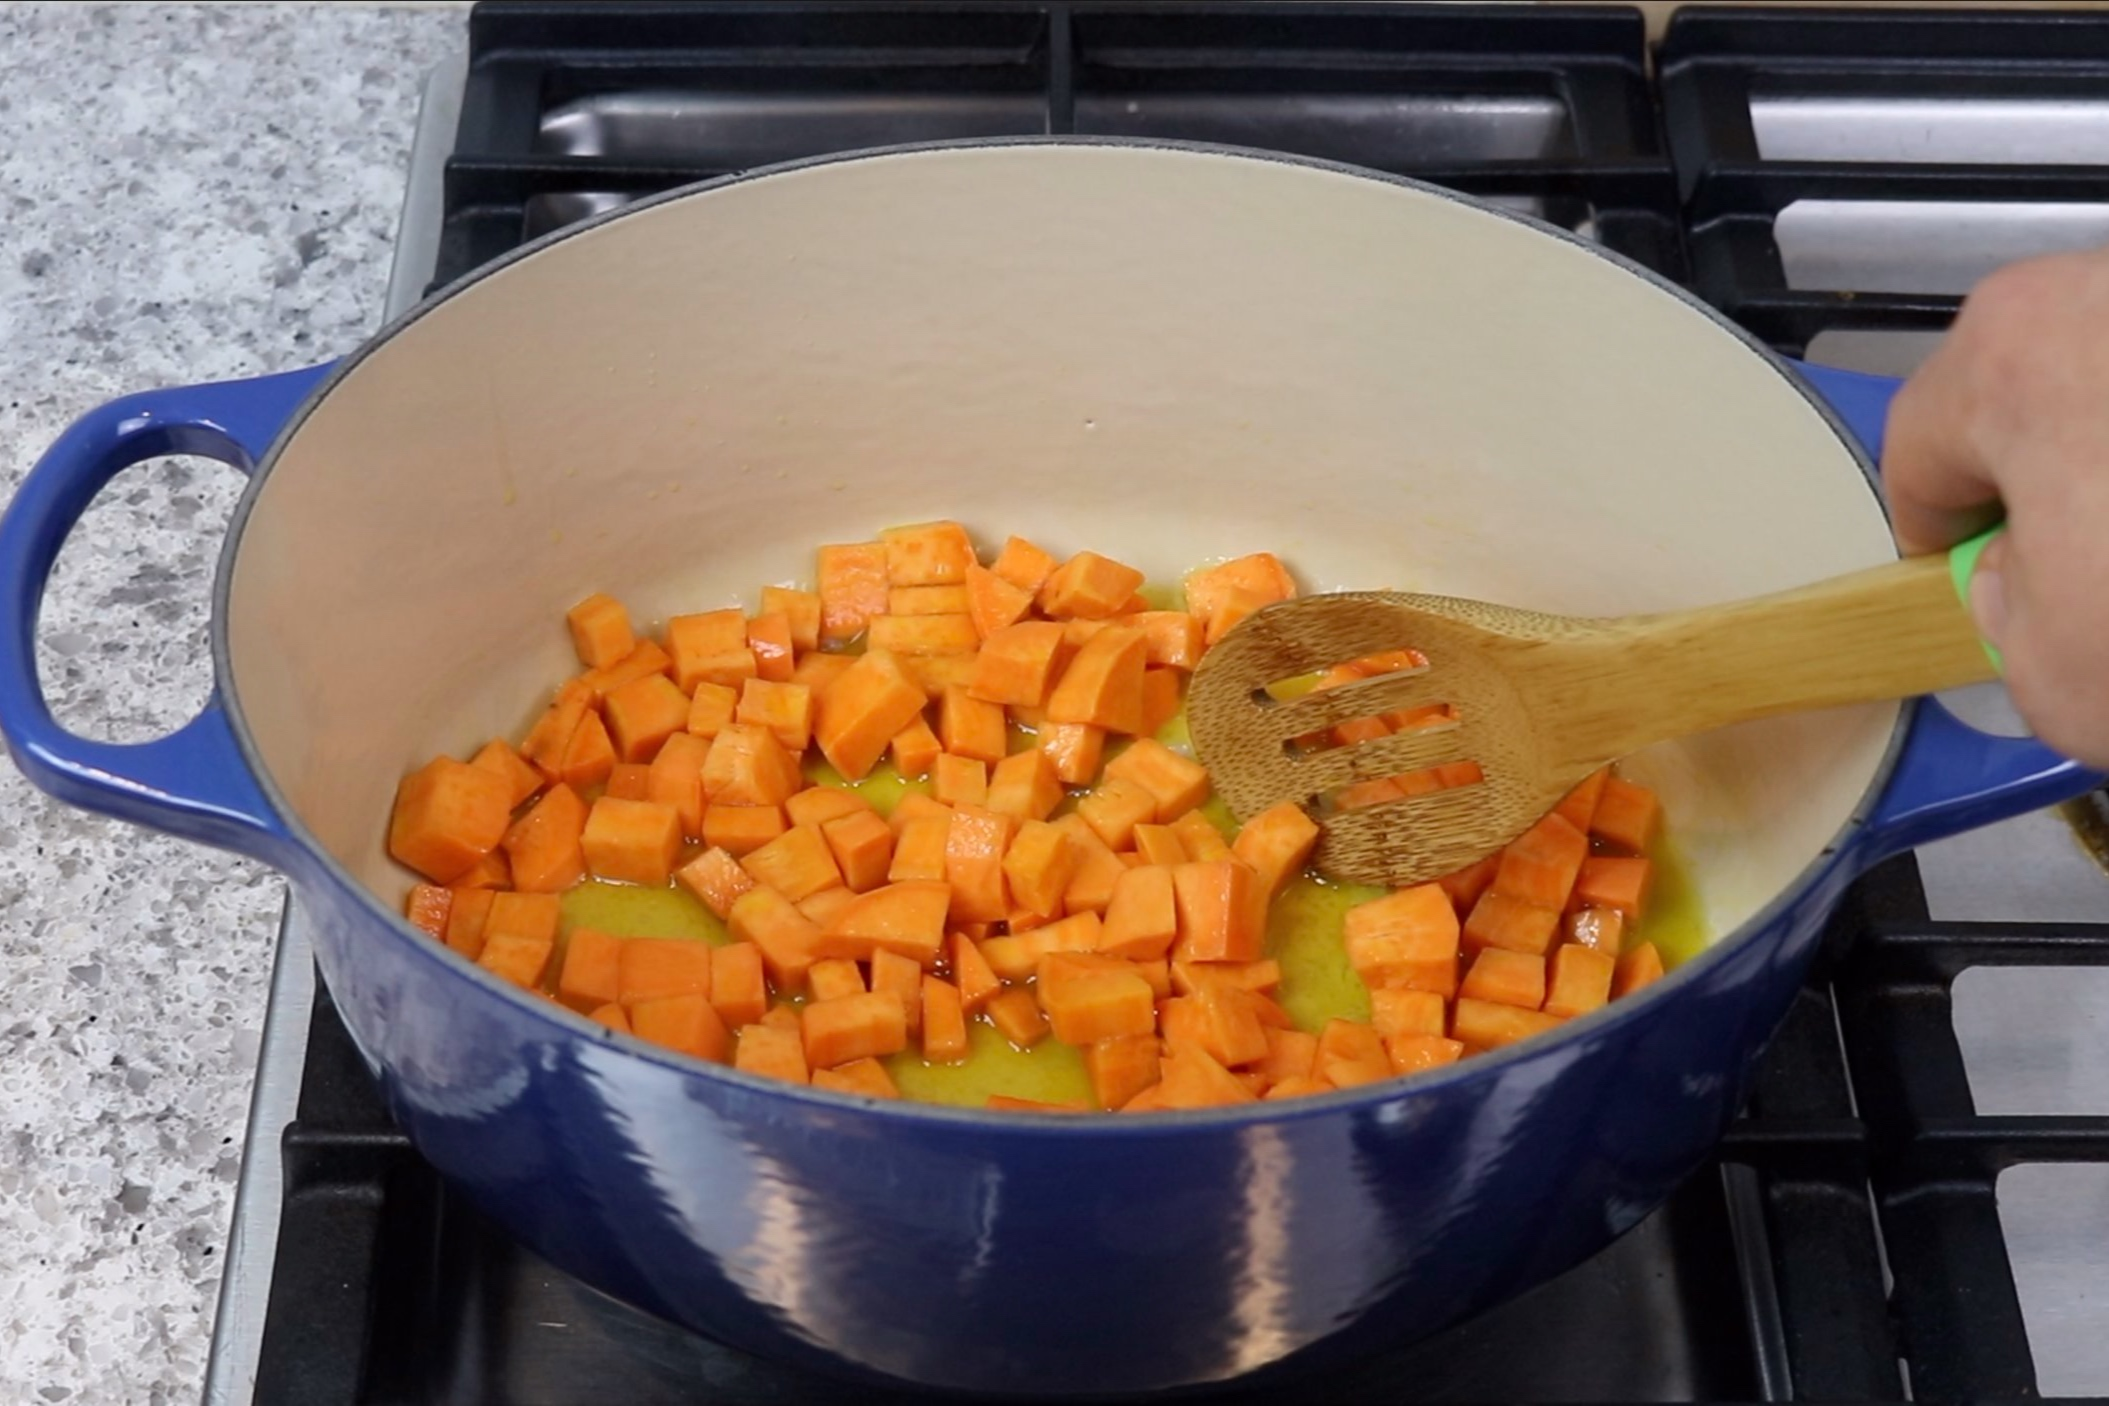 1. Heat the olive oil in large skillet over medium heat. Add the sweet potato and sauté for 5 minutes. -